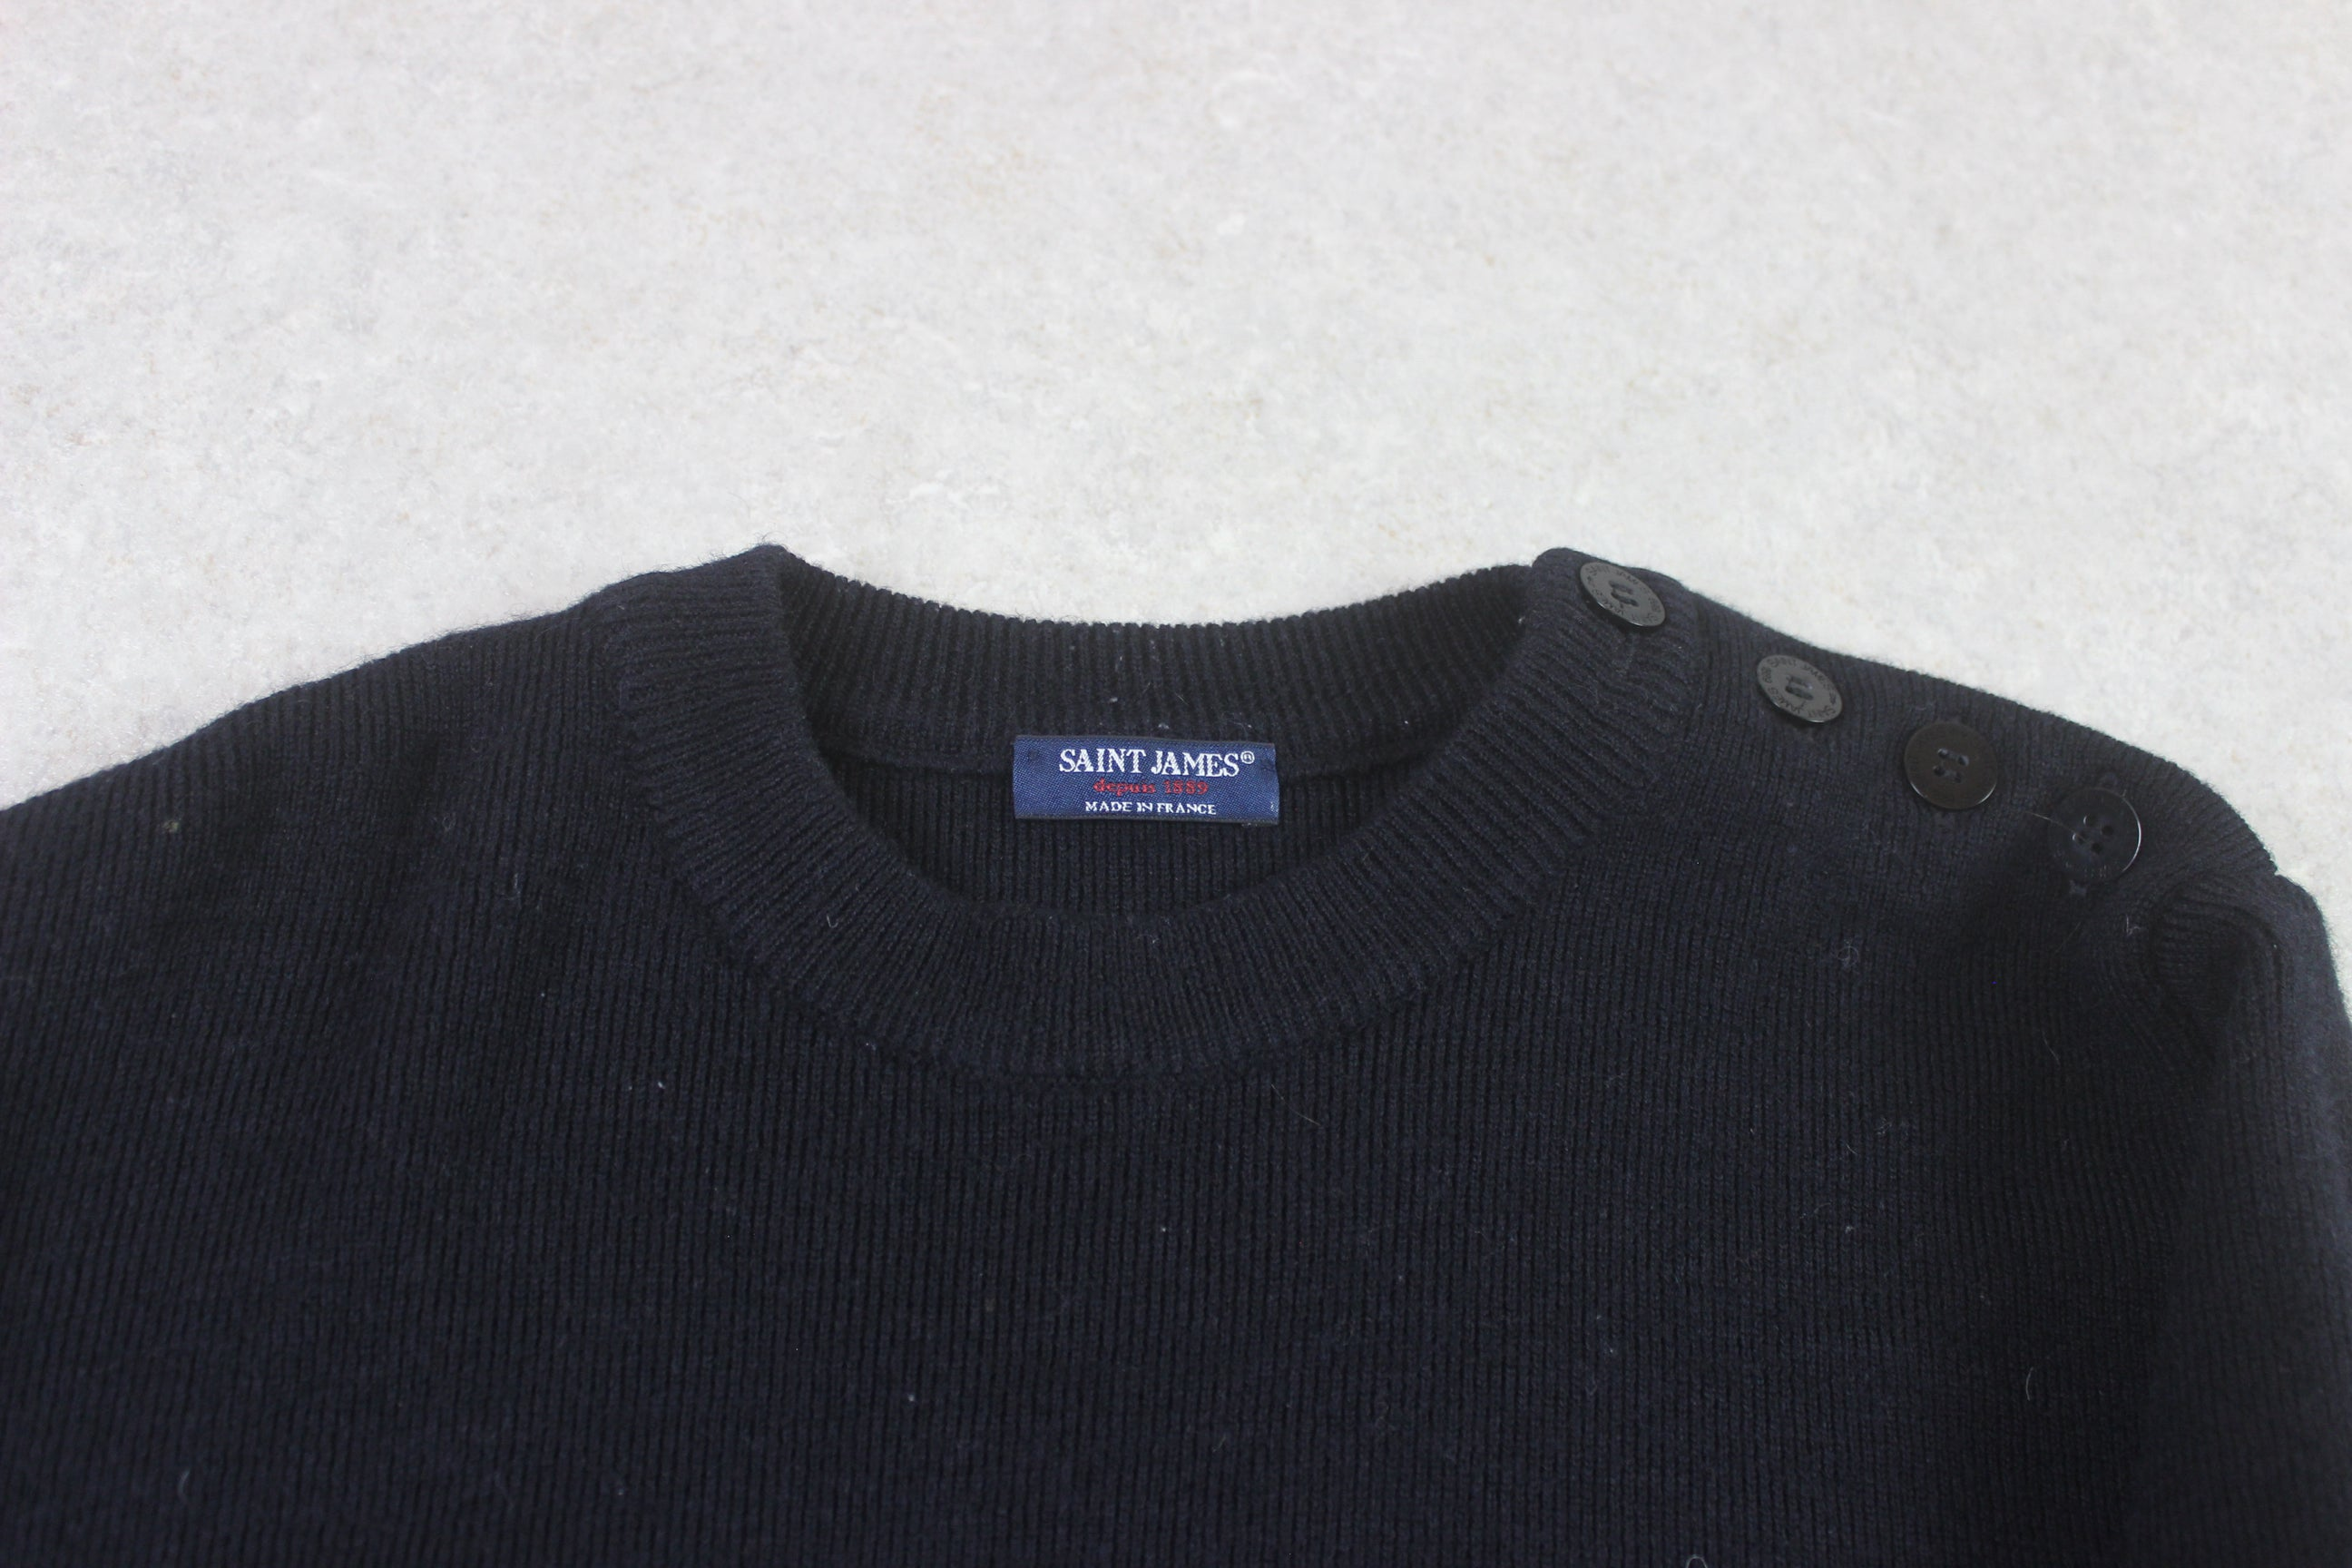 Saint James - Knit Jumper - Navy Blue - Small